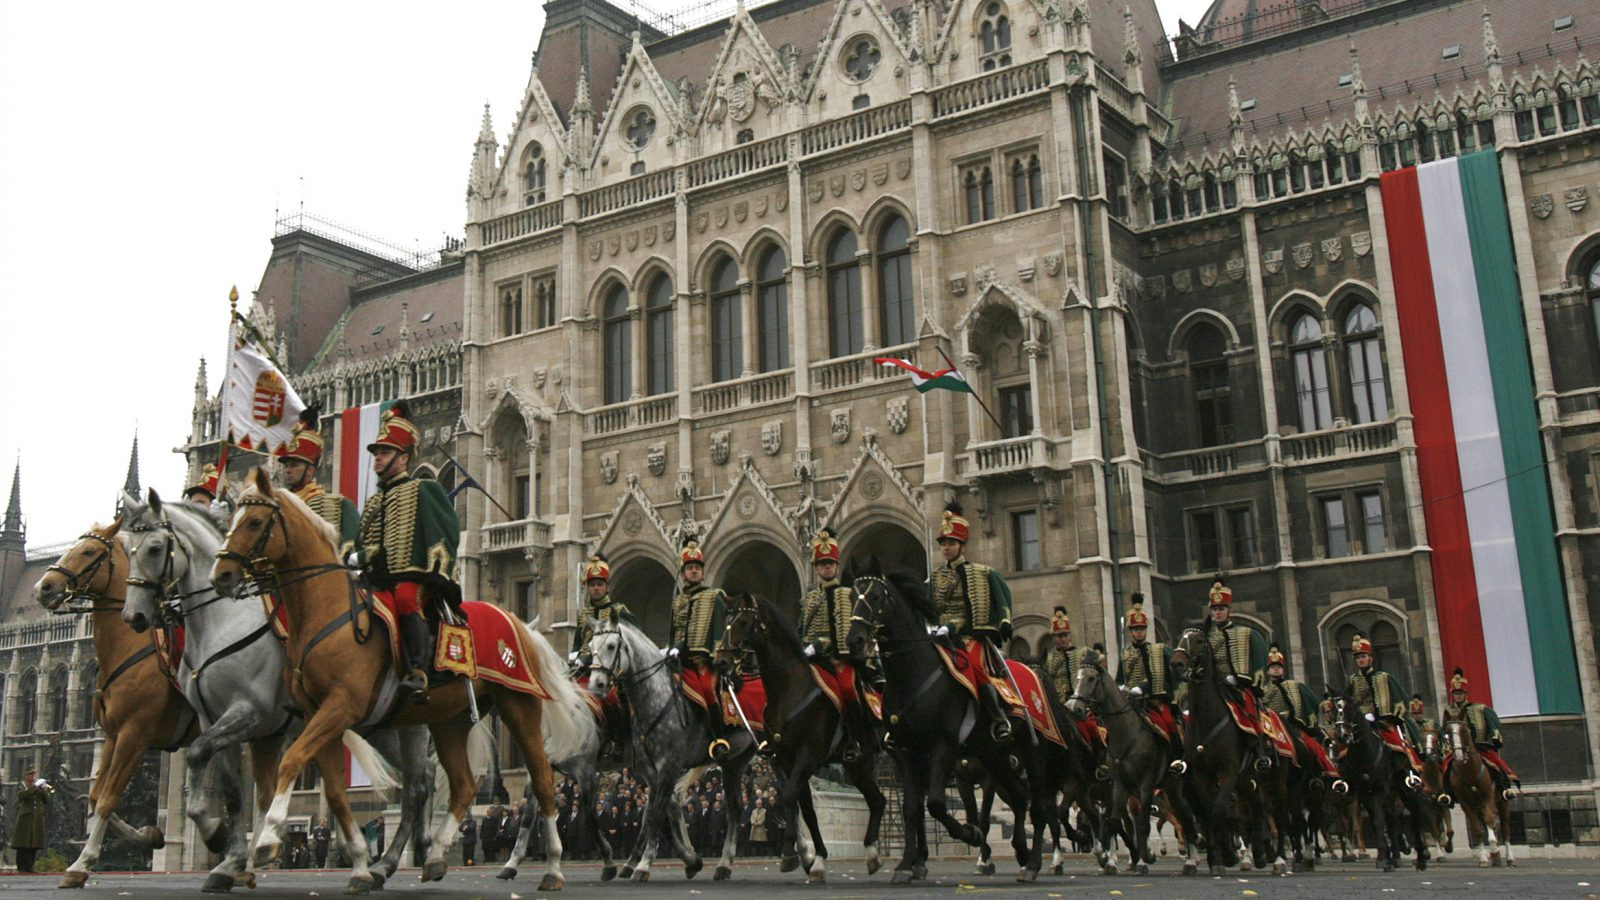 Hungarian Hussars ride their horses in front of the parliament building in Budapest October 23, 2008 during a commemoration of Hungary's 1956 anti-communist revolution.